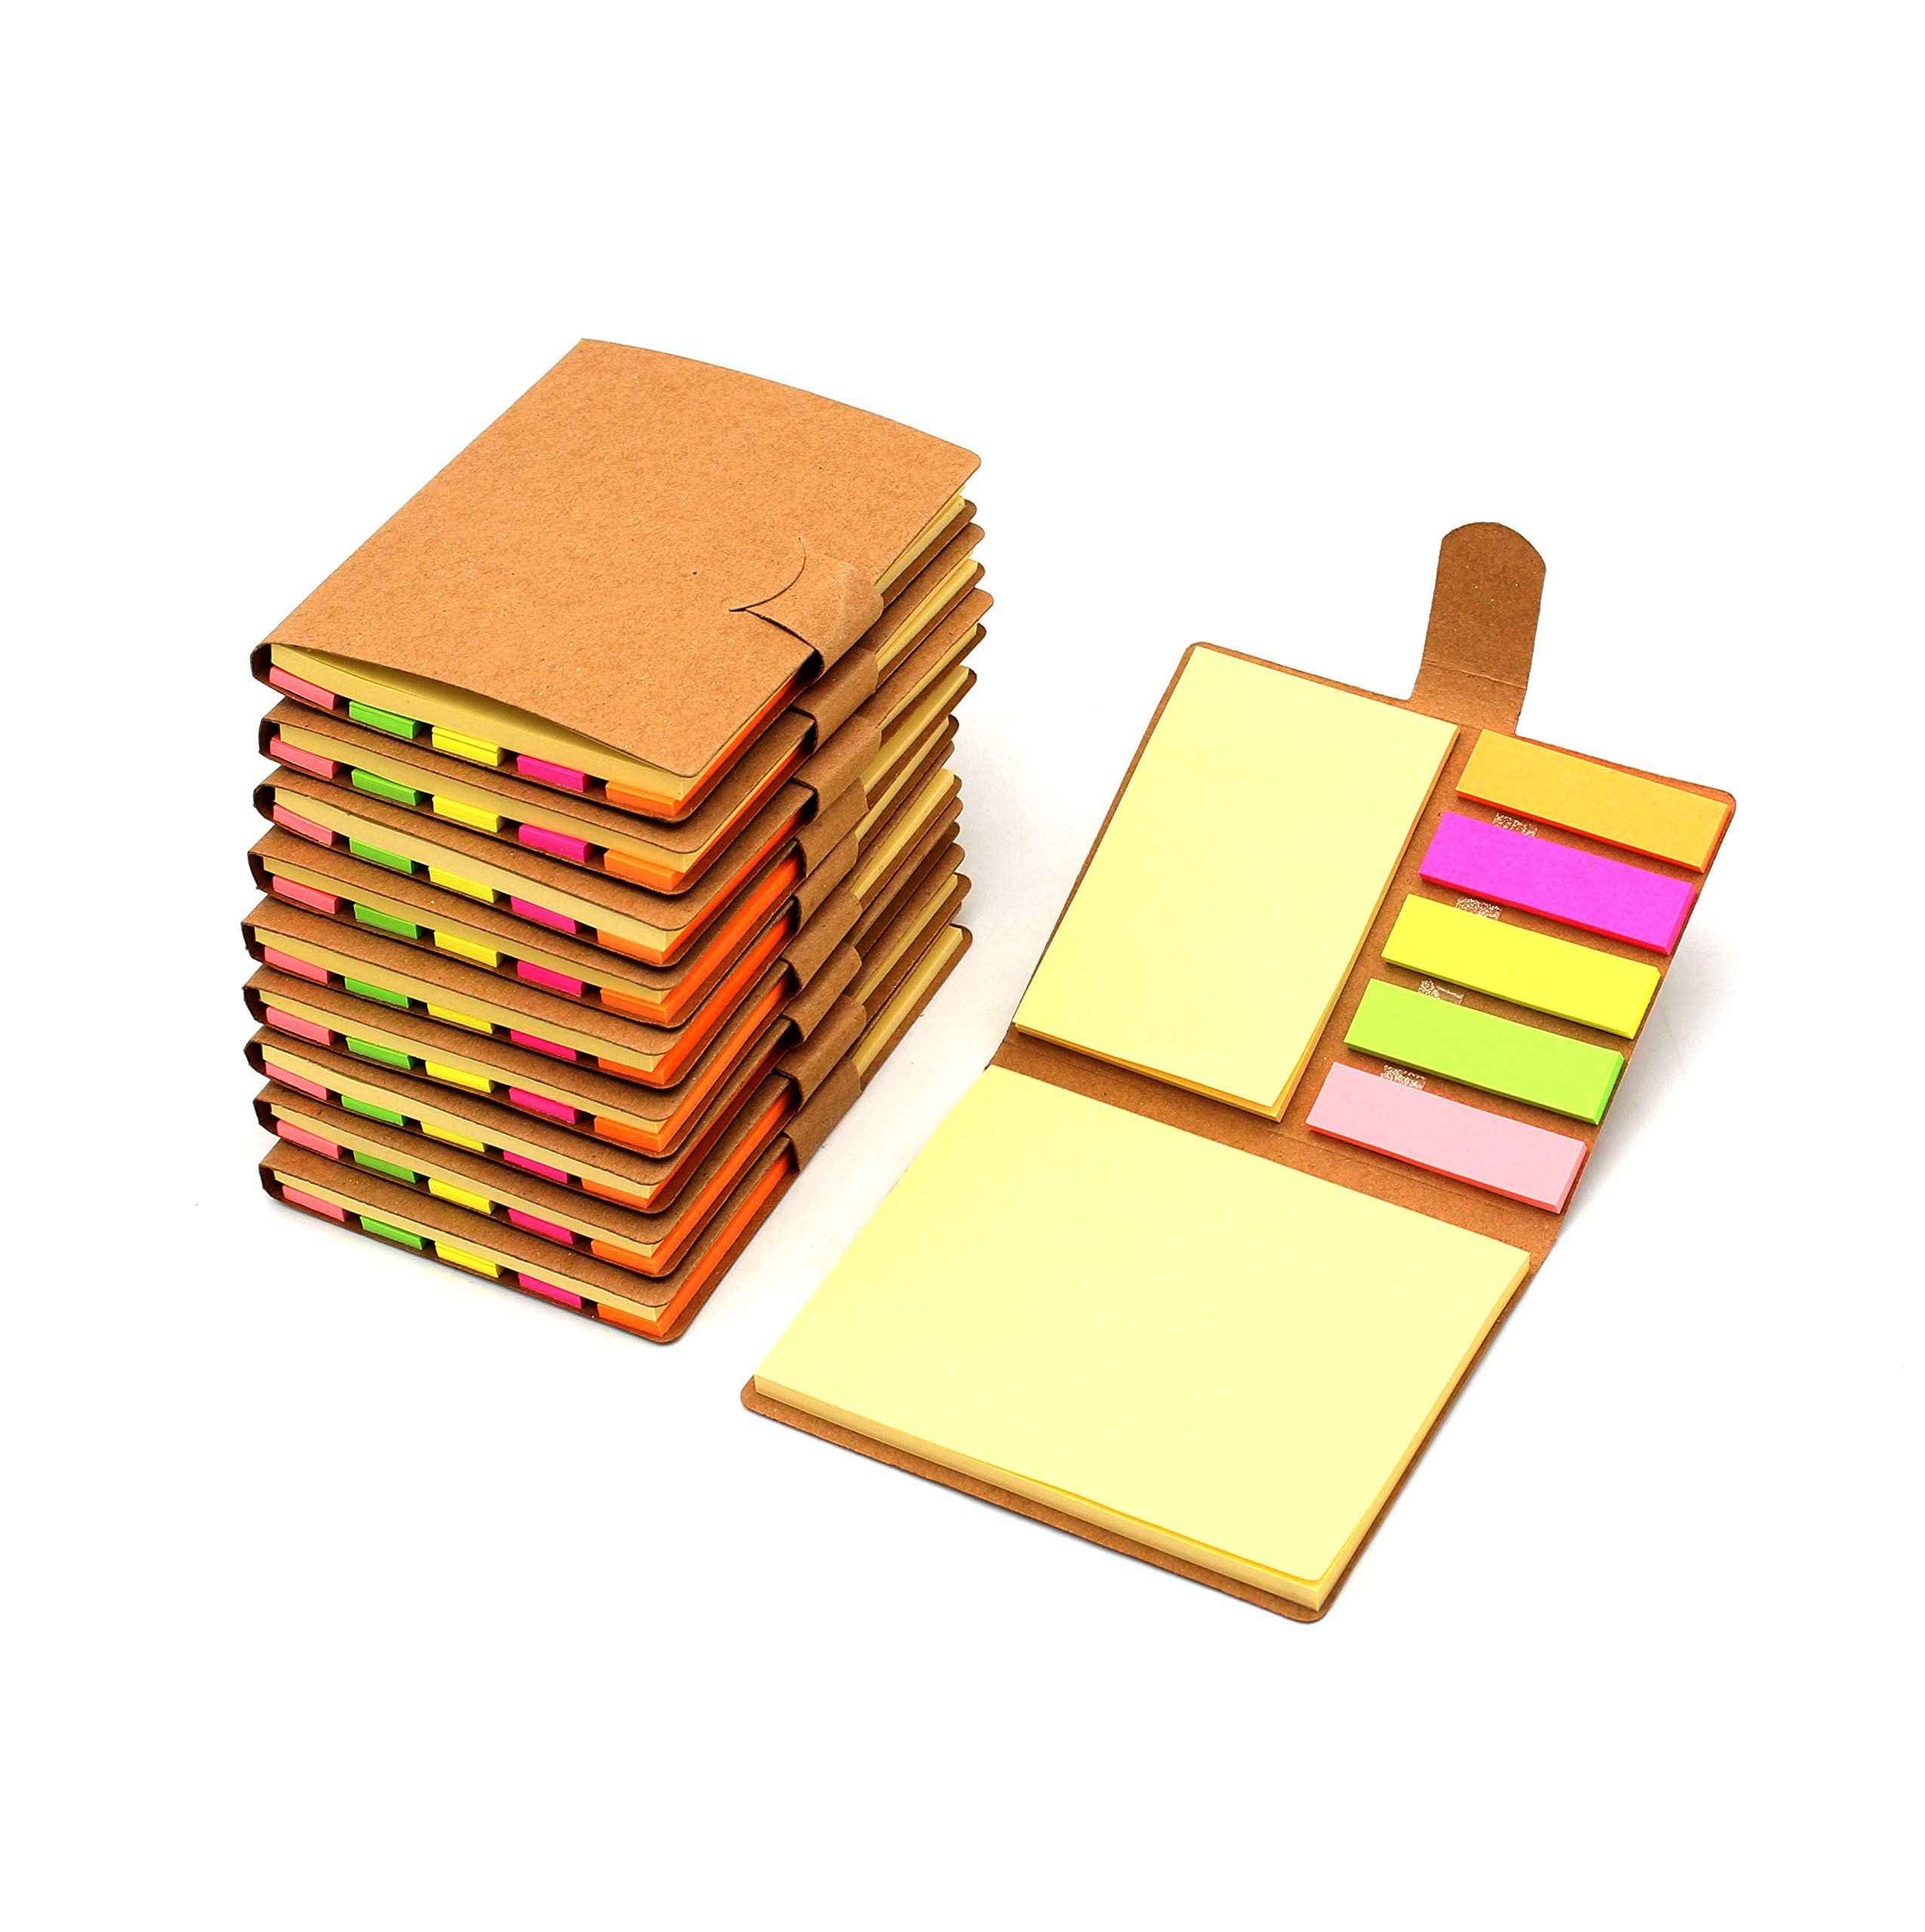 Tueascallk 10 Packs Combination Sticky Notes, Pop-up Self-Adhesive Notes, 3.2'' x 4.1'', 200 Sheets/Pack